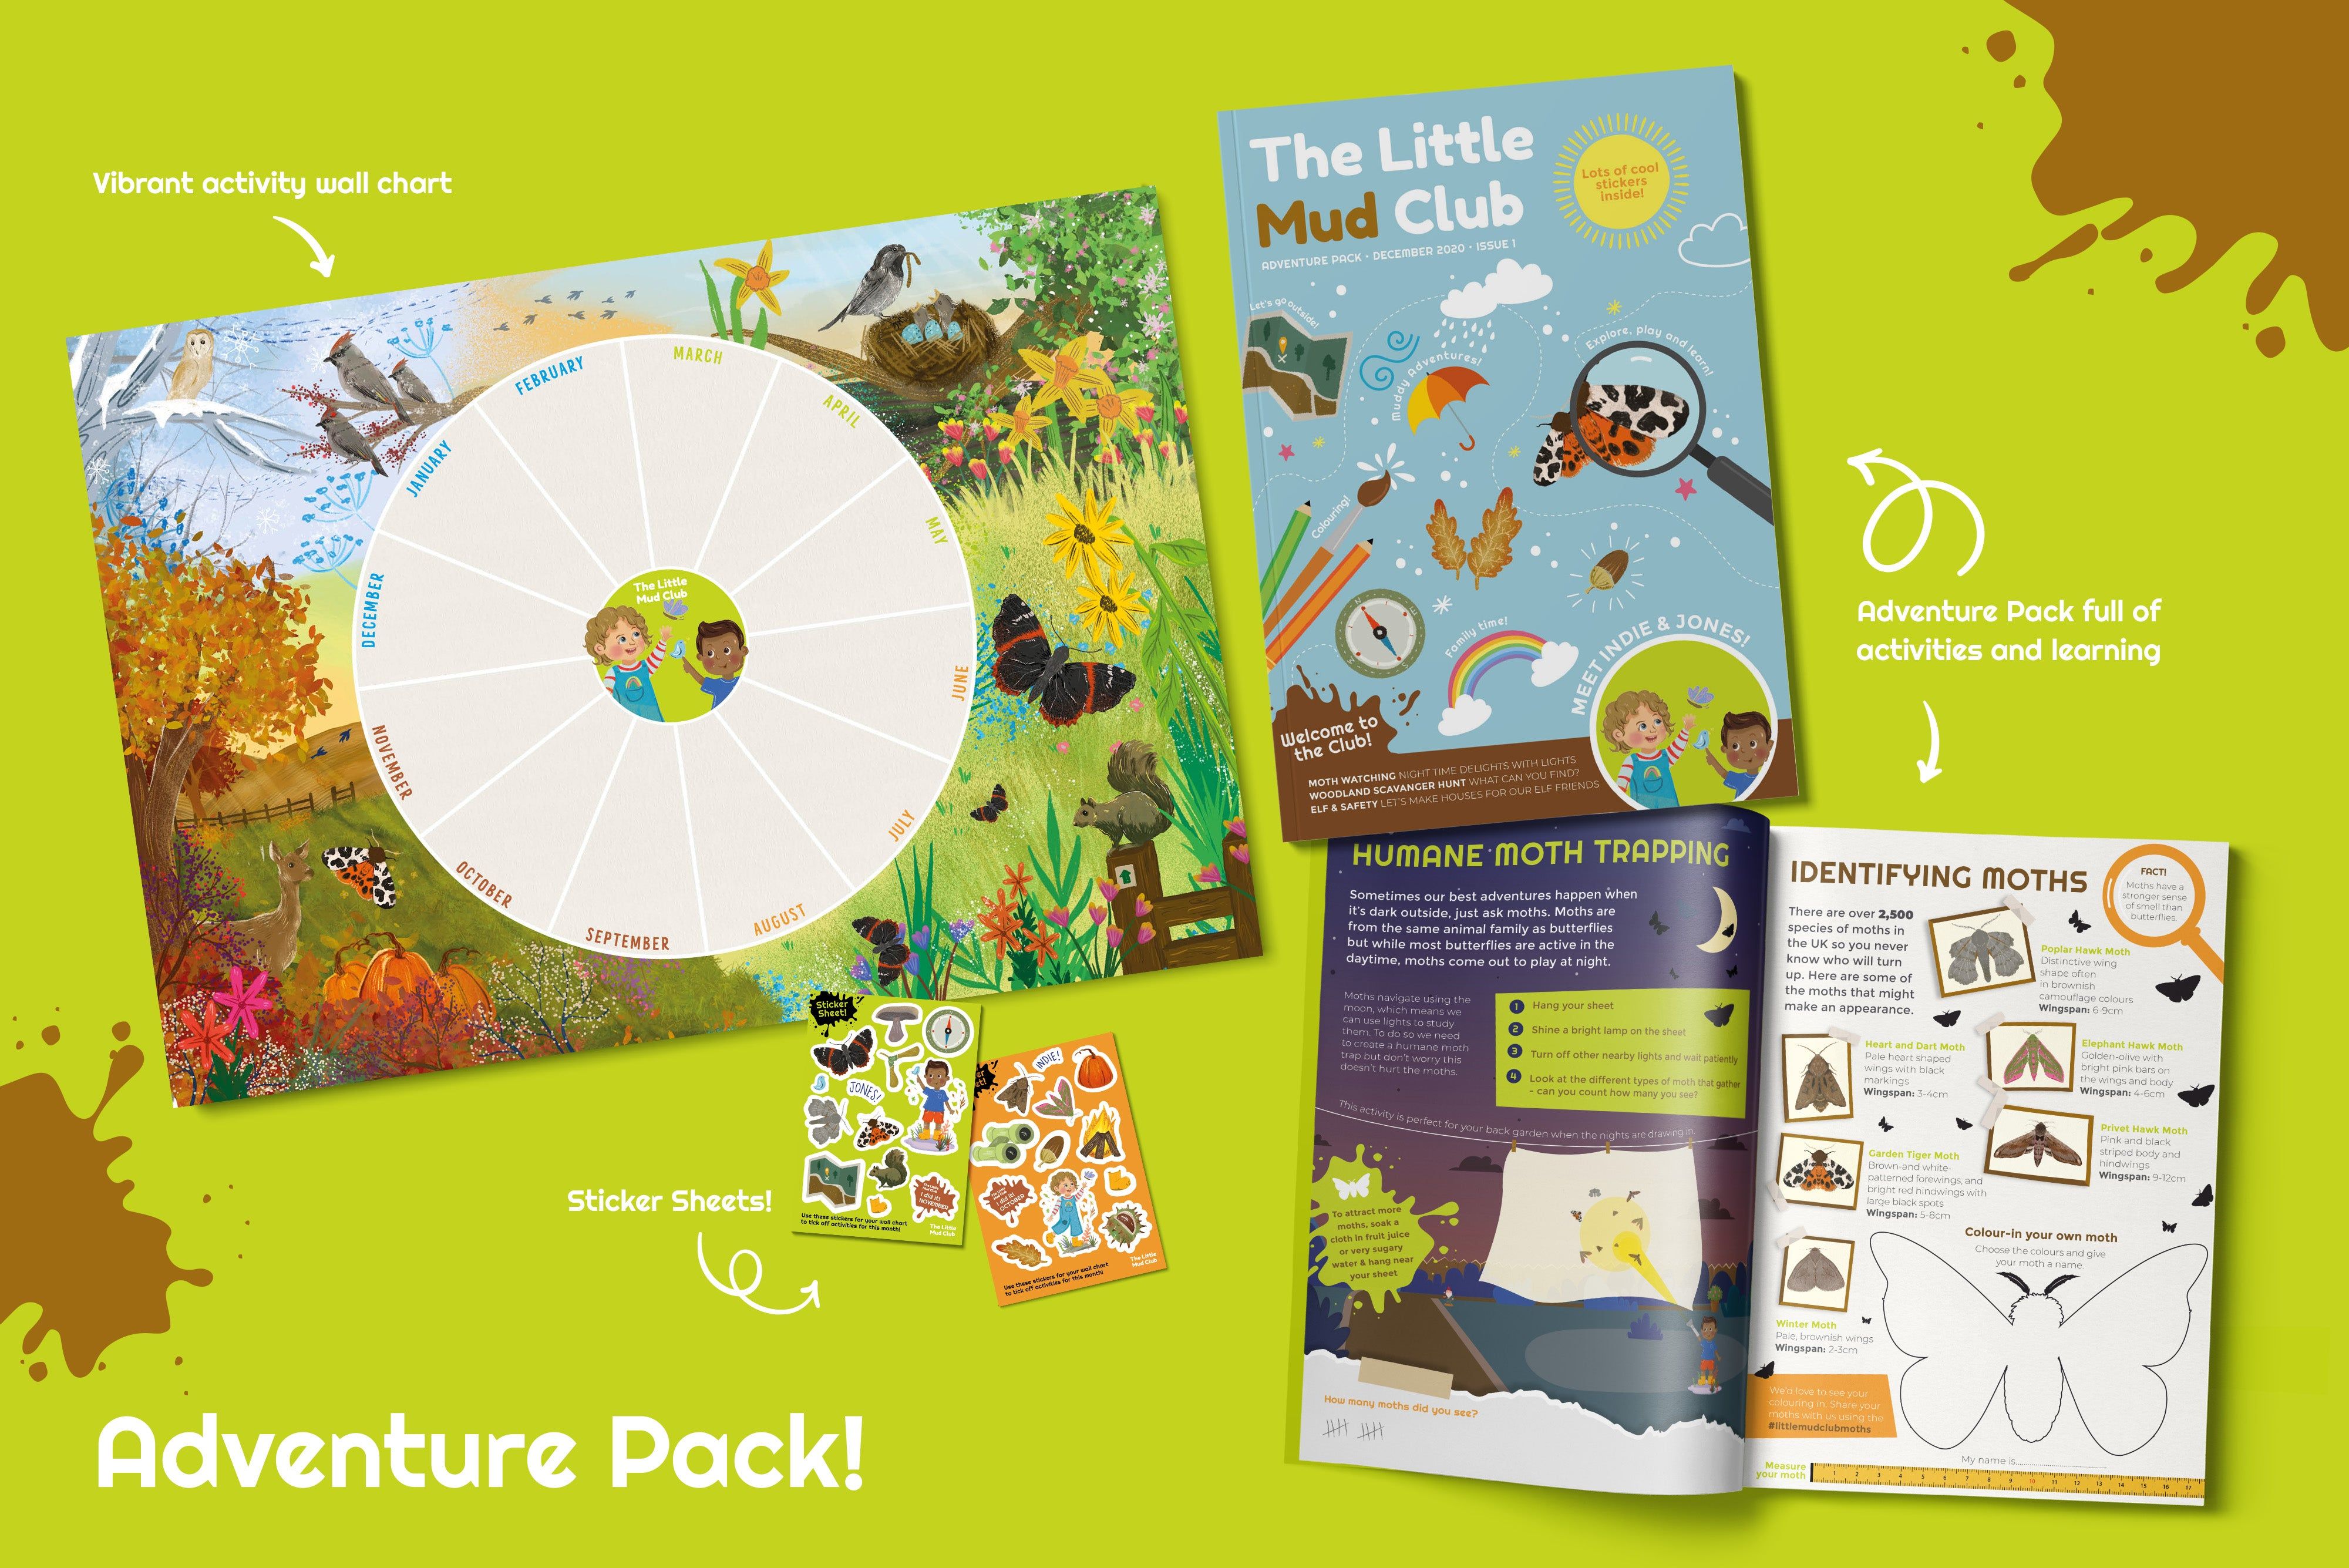 Little Mud Club Adventure Pack display. Featuring animal inspired wall chart; fun, exciting stickers, an example activity book with stylised cover to appeal to children and showing a double page spread of activities related to moths.